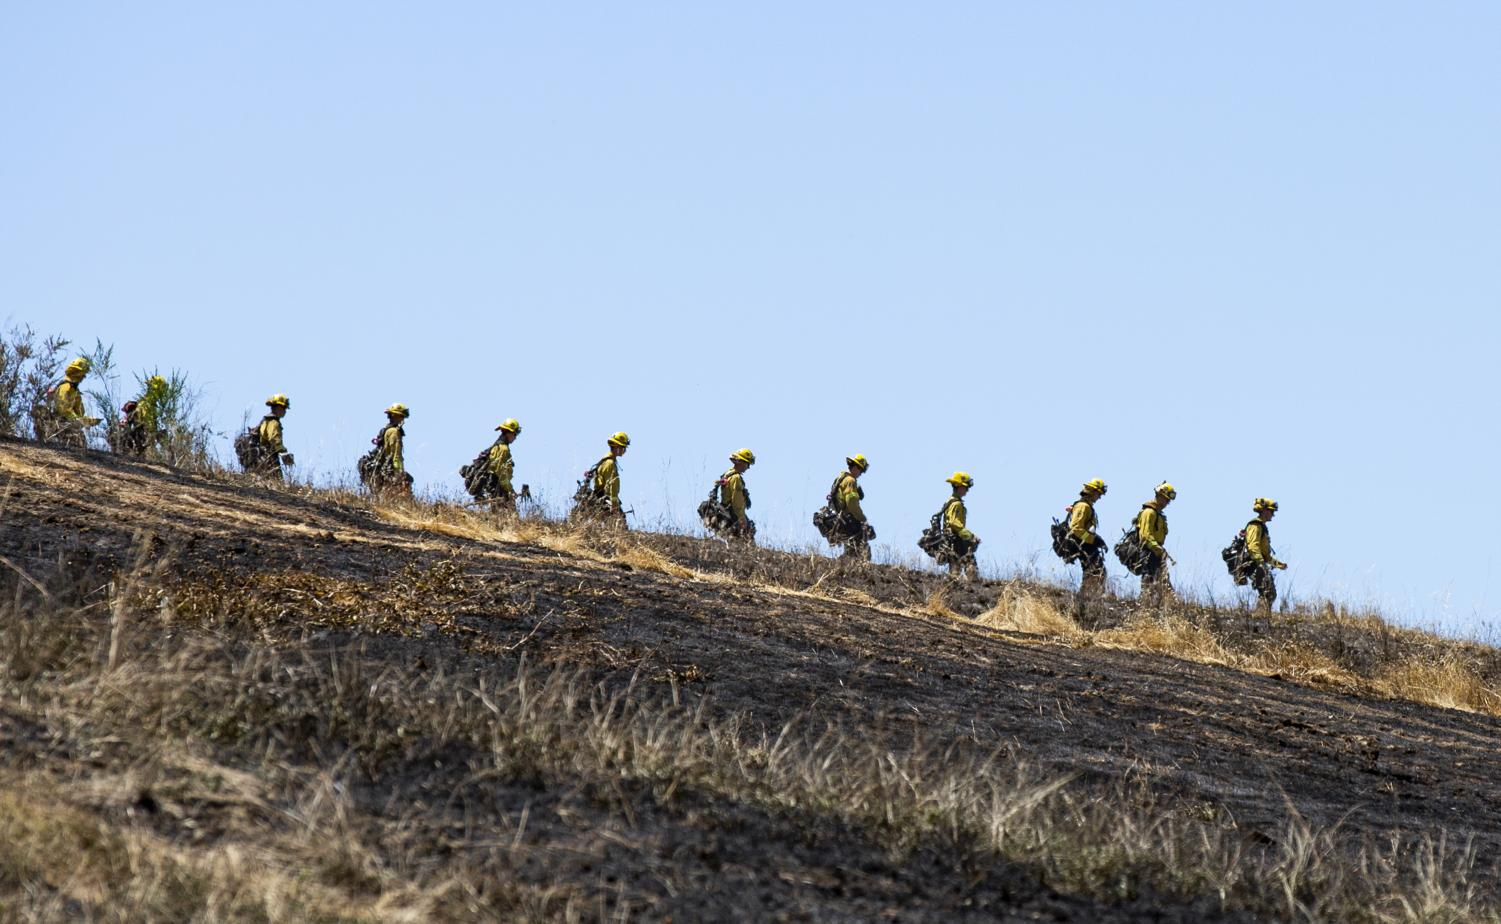 The Marin County Fire Department administers a controlled burn in San Rafael. (Ethan Swope)